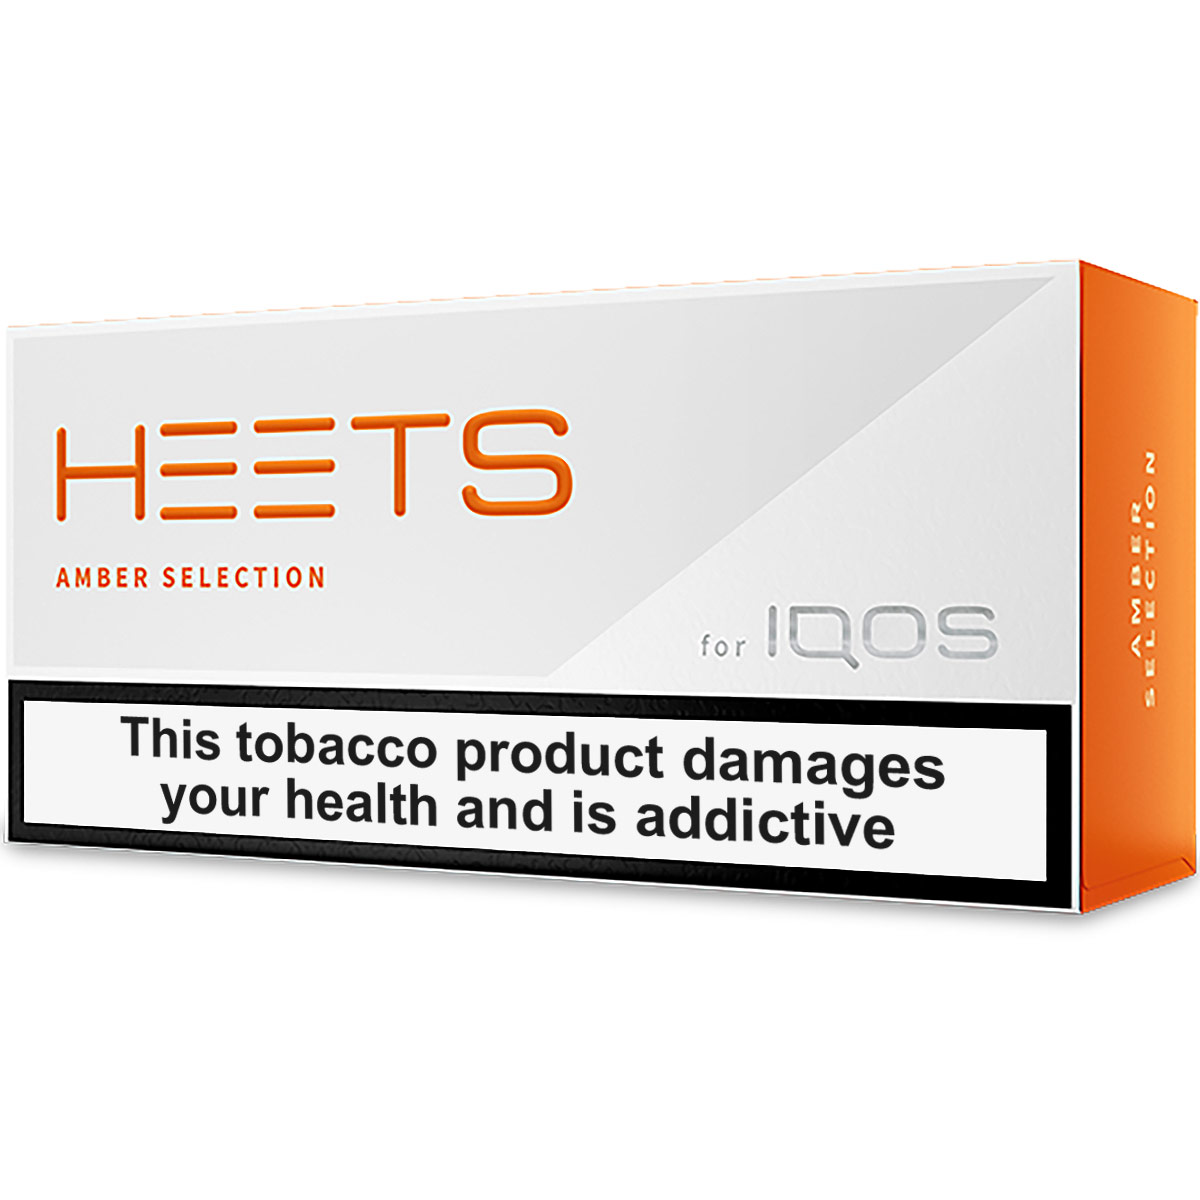 Heets - Amber Selection (Central Asia)